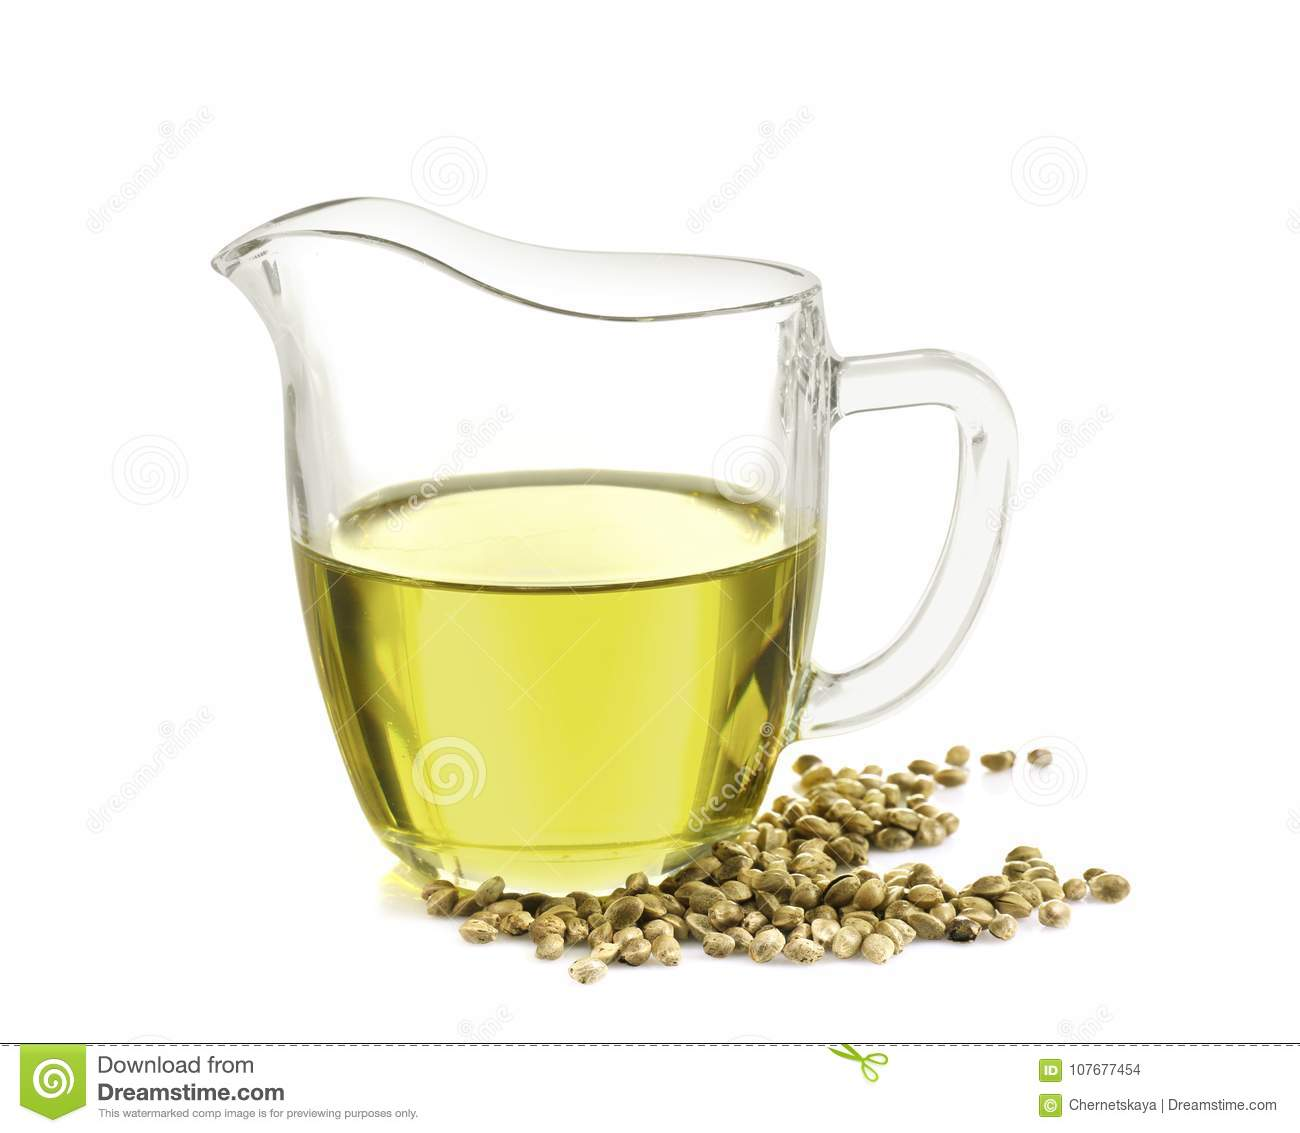 Glass pitcher with hemp oil isolated